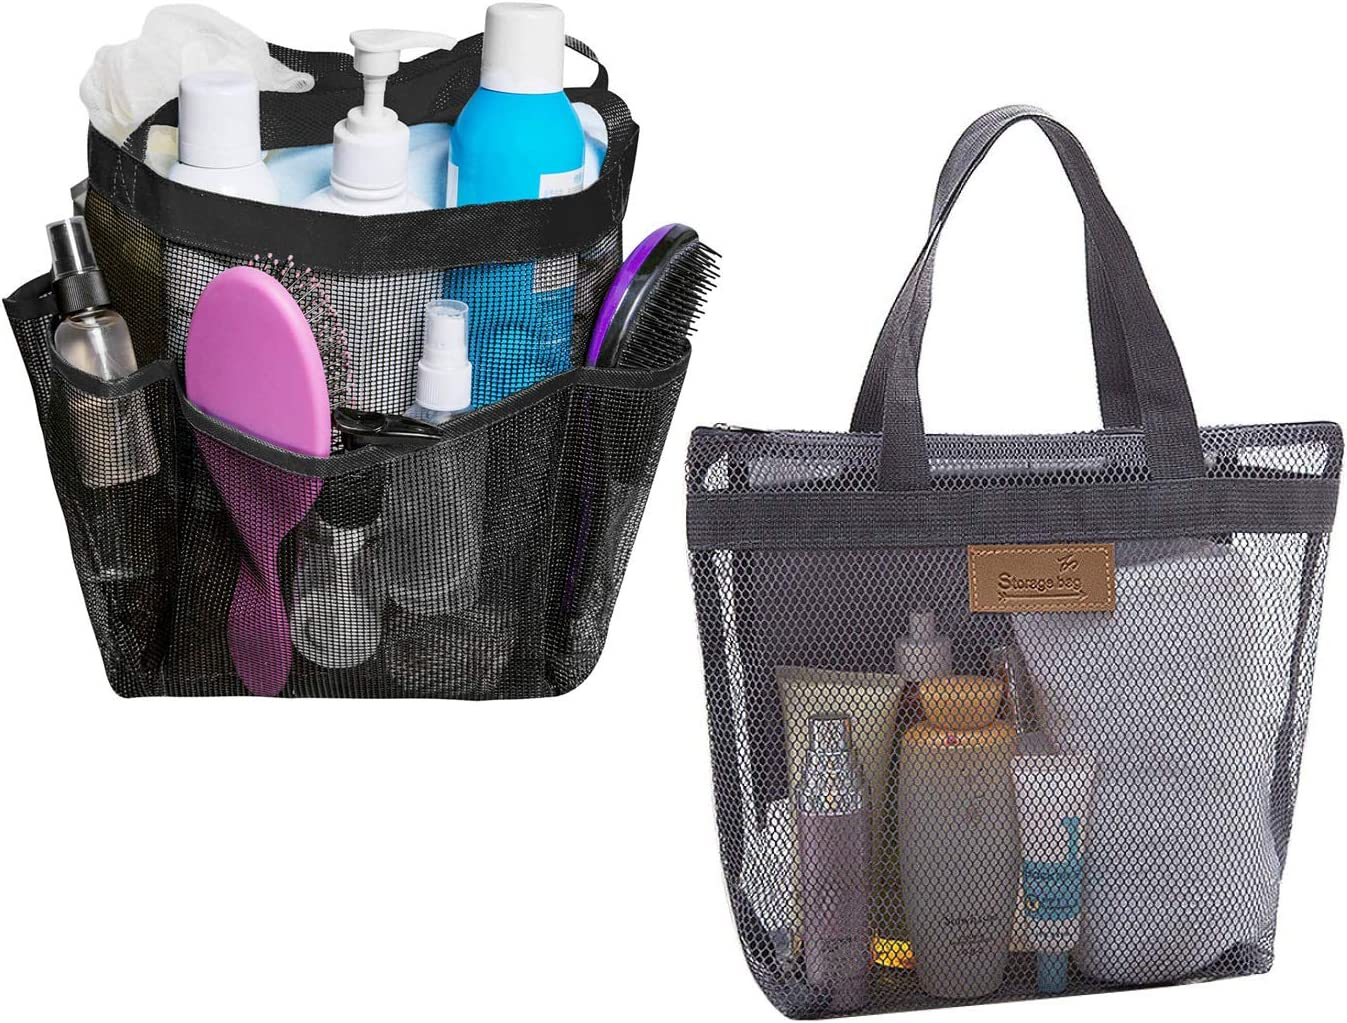 2 Pack Mesh Shower Caddy Shower Tote Bag with 8 Mesh Storage Pockets Shower Caddy Bag Bath Organizer for College dorms Gym Shower Swimming Travel and Daily (Black)